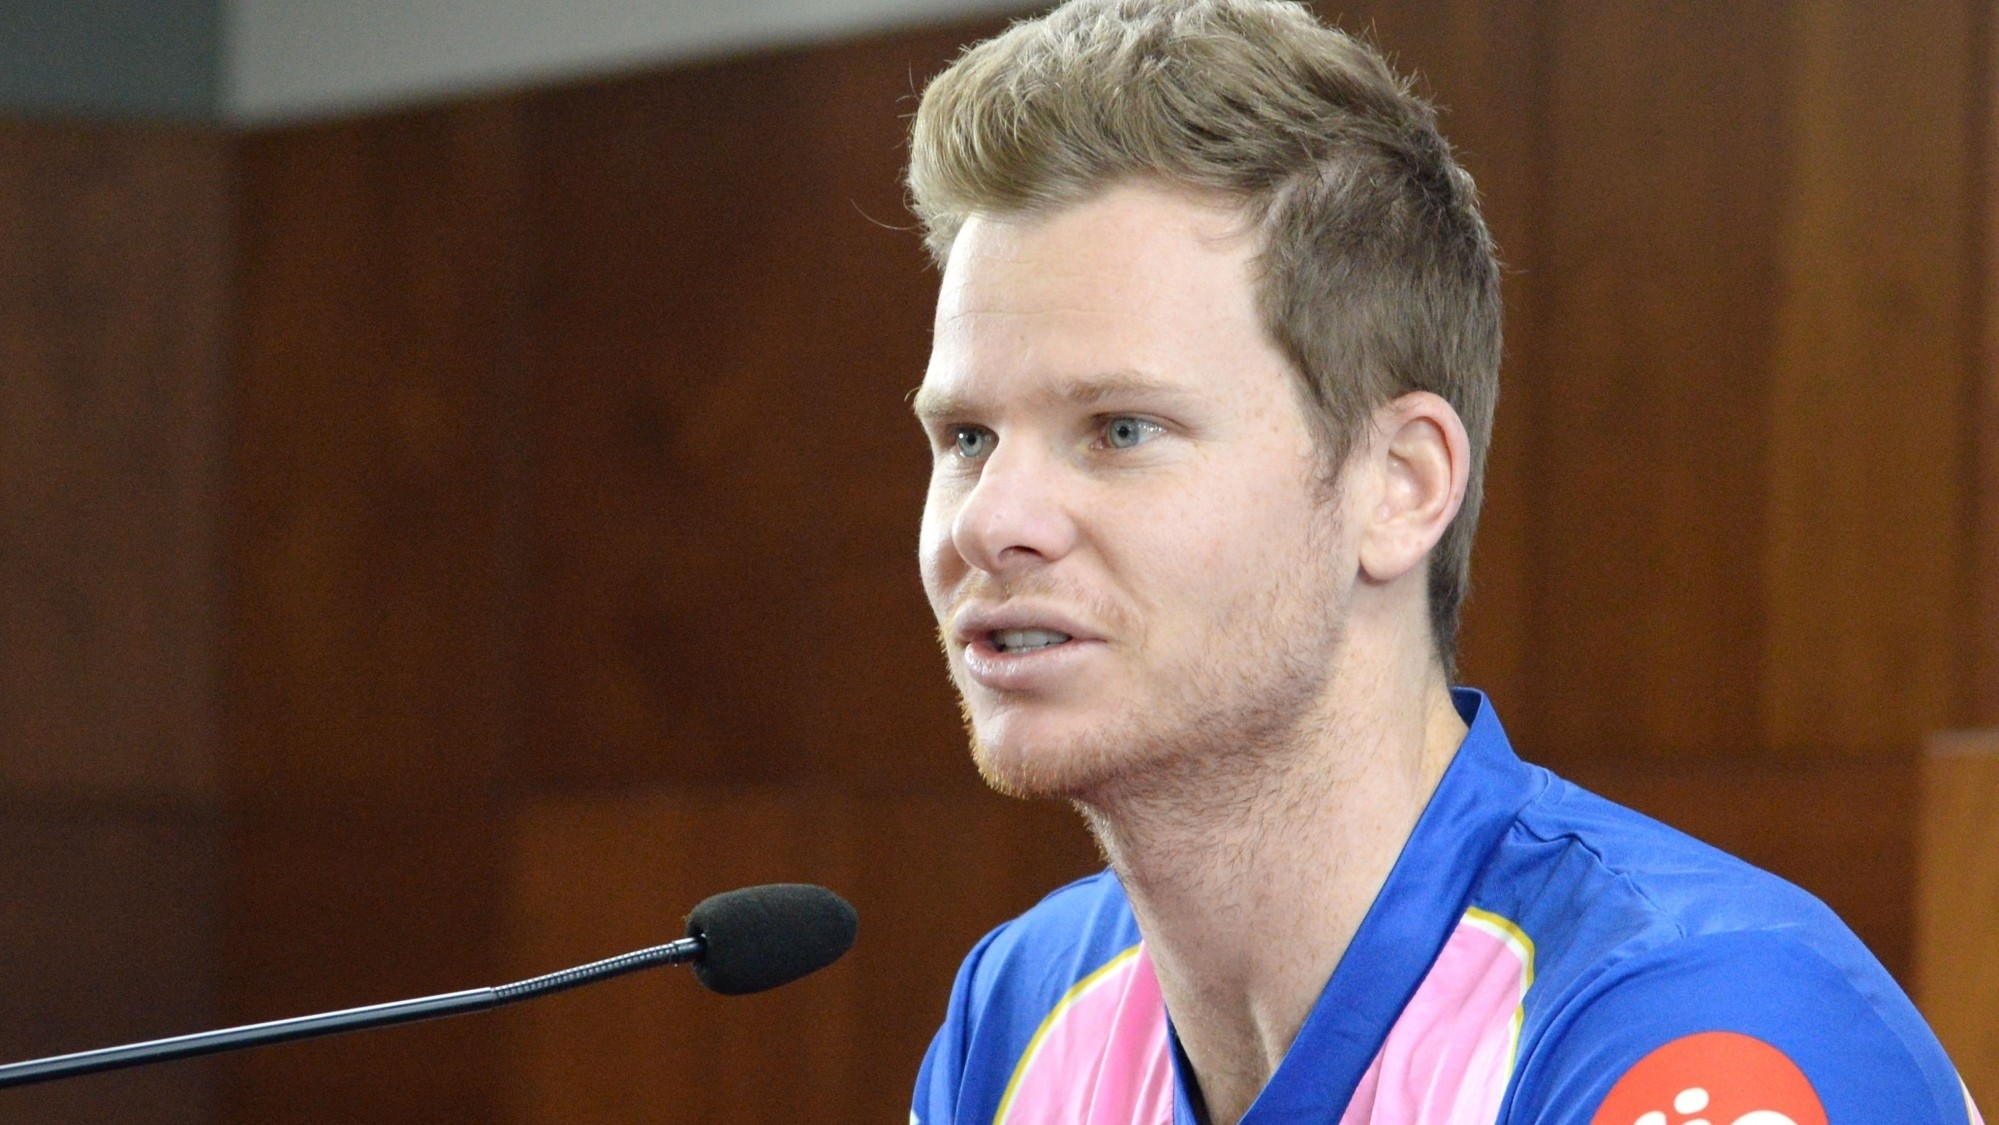 IPL 2019: Steve Smith reveals how IPL helped him to prepare for the World Cup